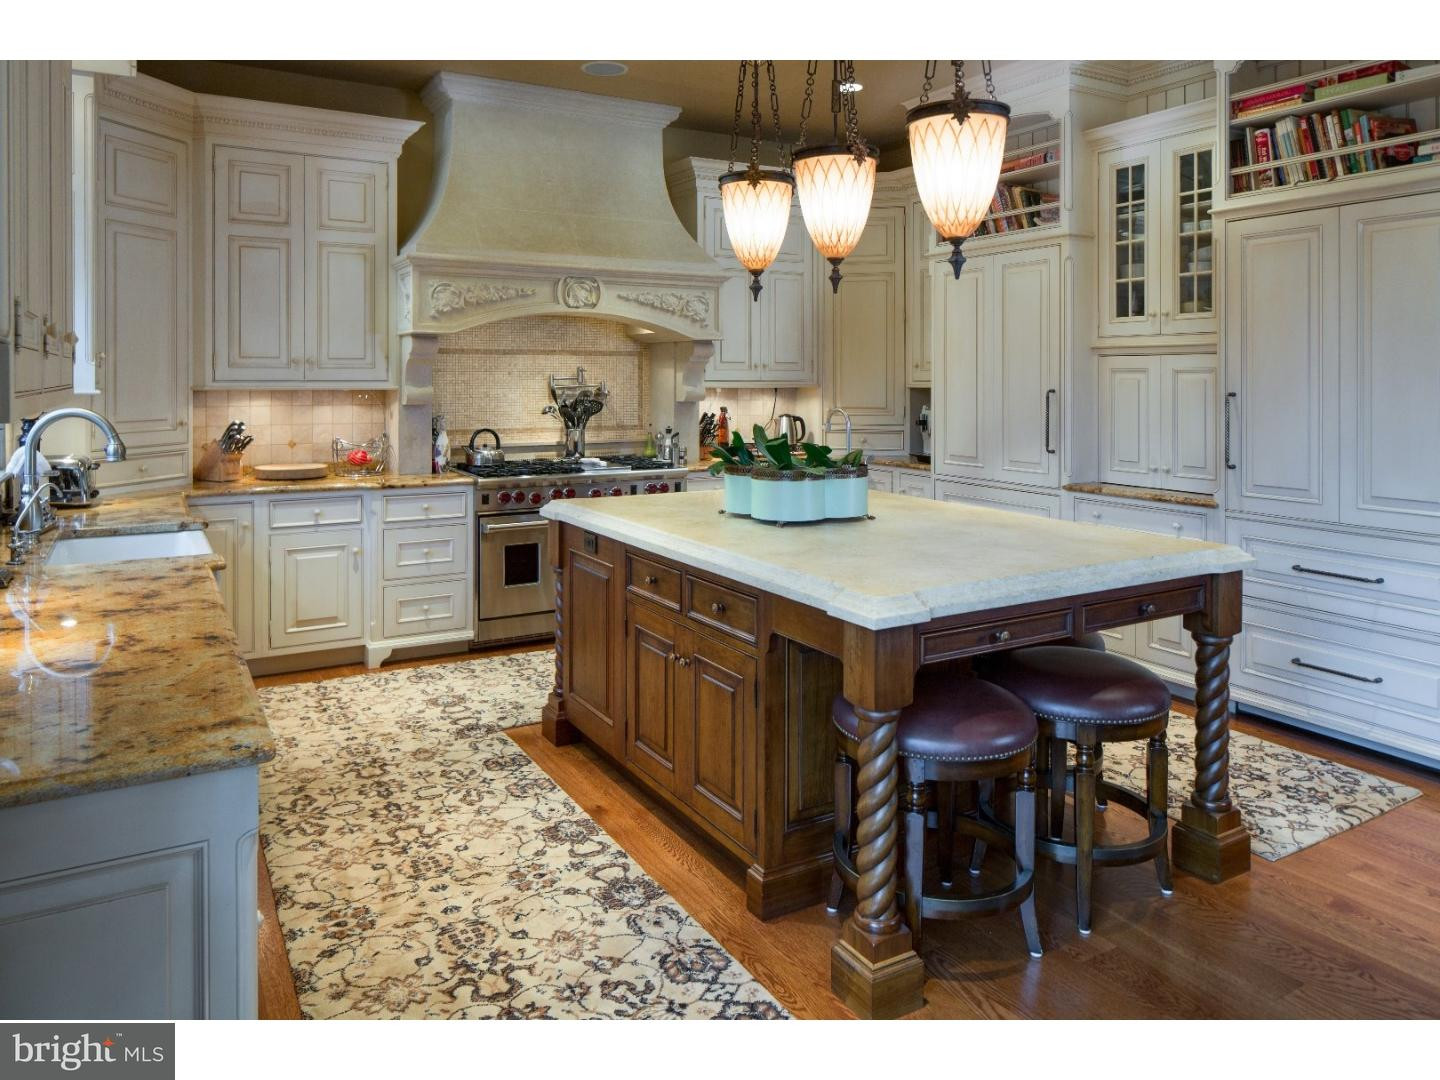 16 Popular Manny Hardwood Floors Bridgeport Ct 2021 free download manny hardwood floors bridgeport ct of new hope pa homes for sale find south jersey houses inside bright trend resall 300374822553 8